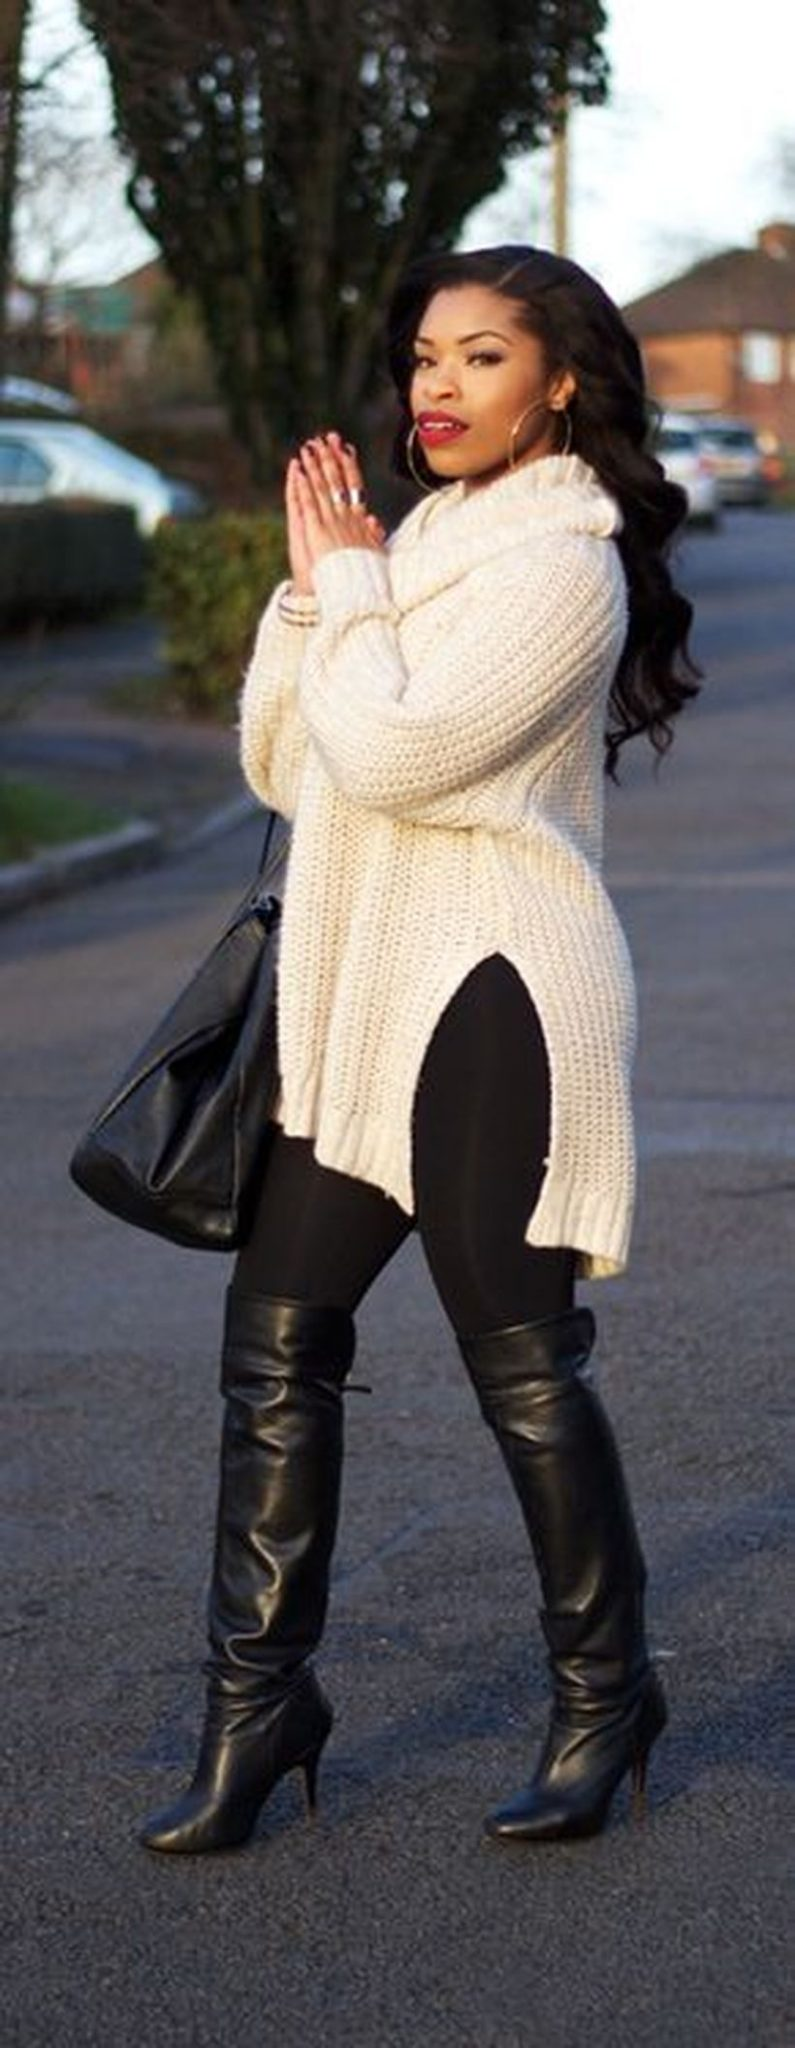 Stylish plus size outfits for winter 2017 60 - Fashion Best